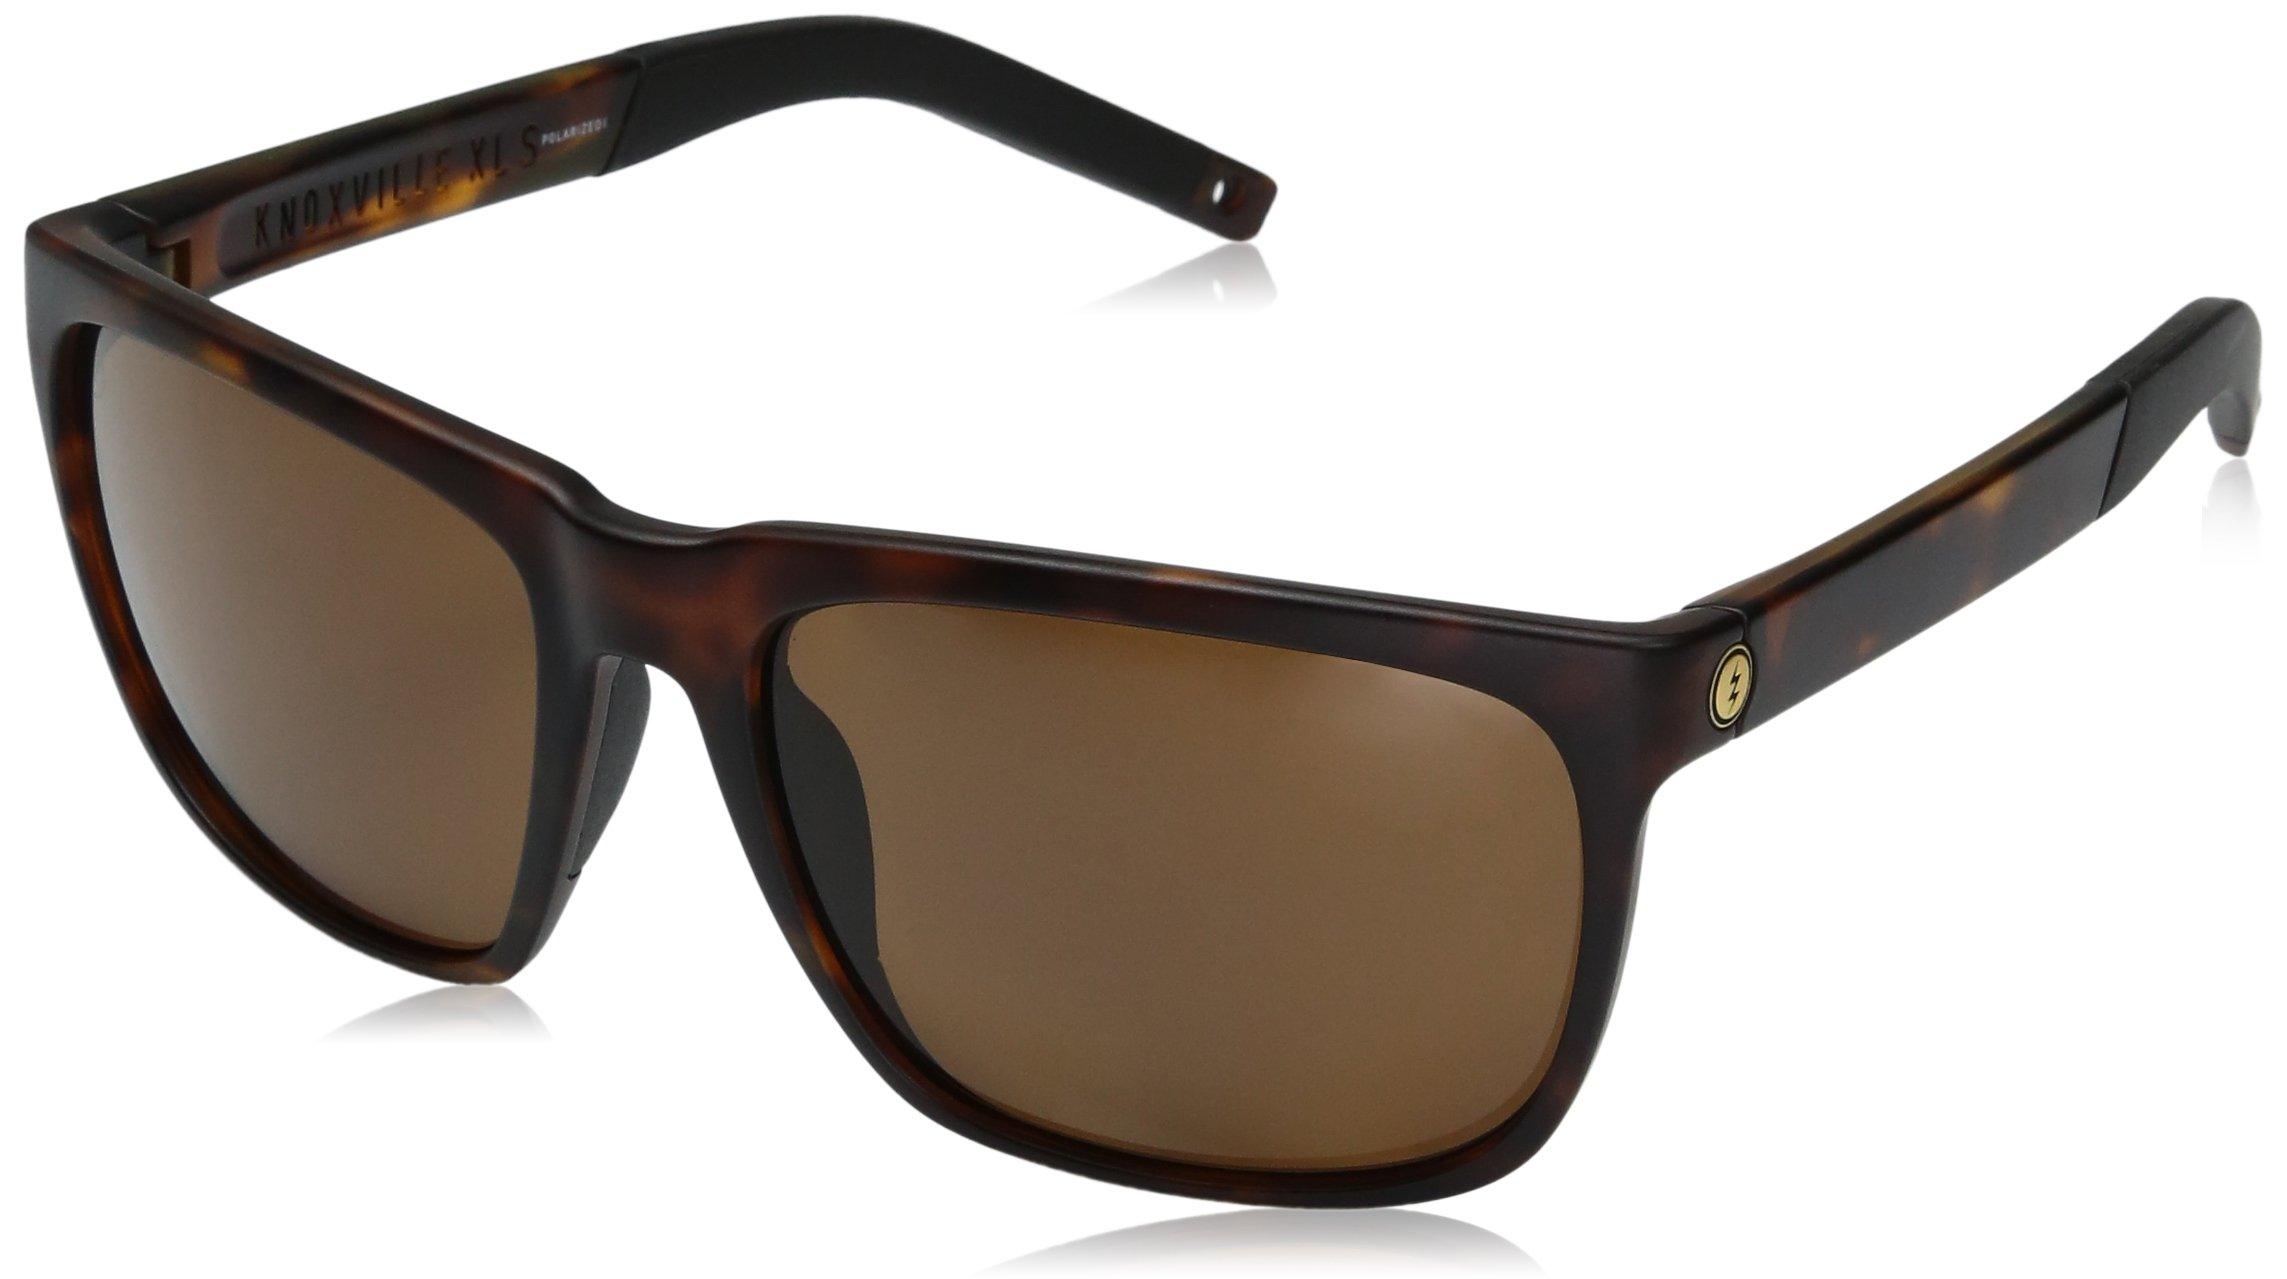 Electric Visual Knoxville XL S Matte Tortoise/Polarized Bronze Sunglasses